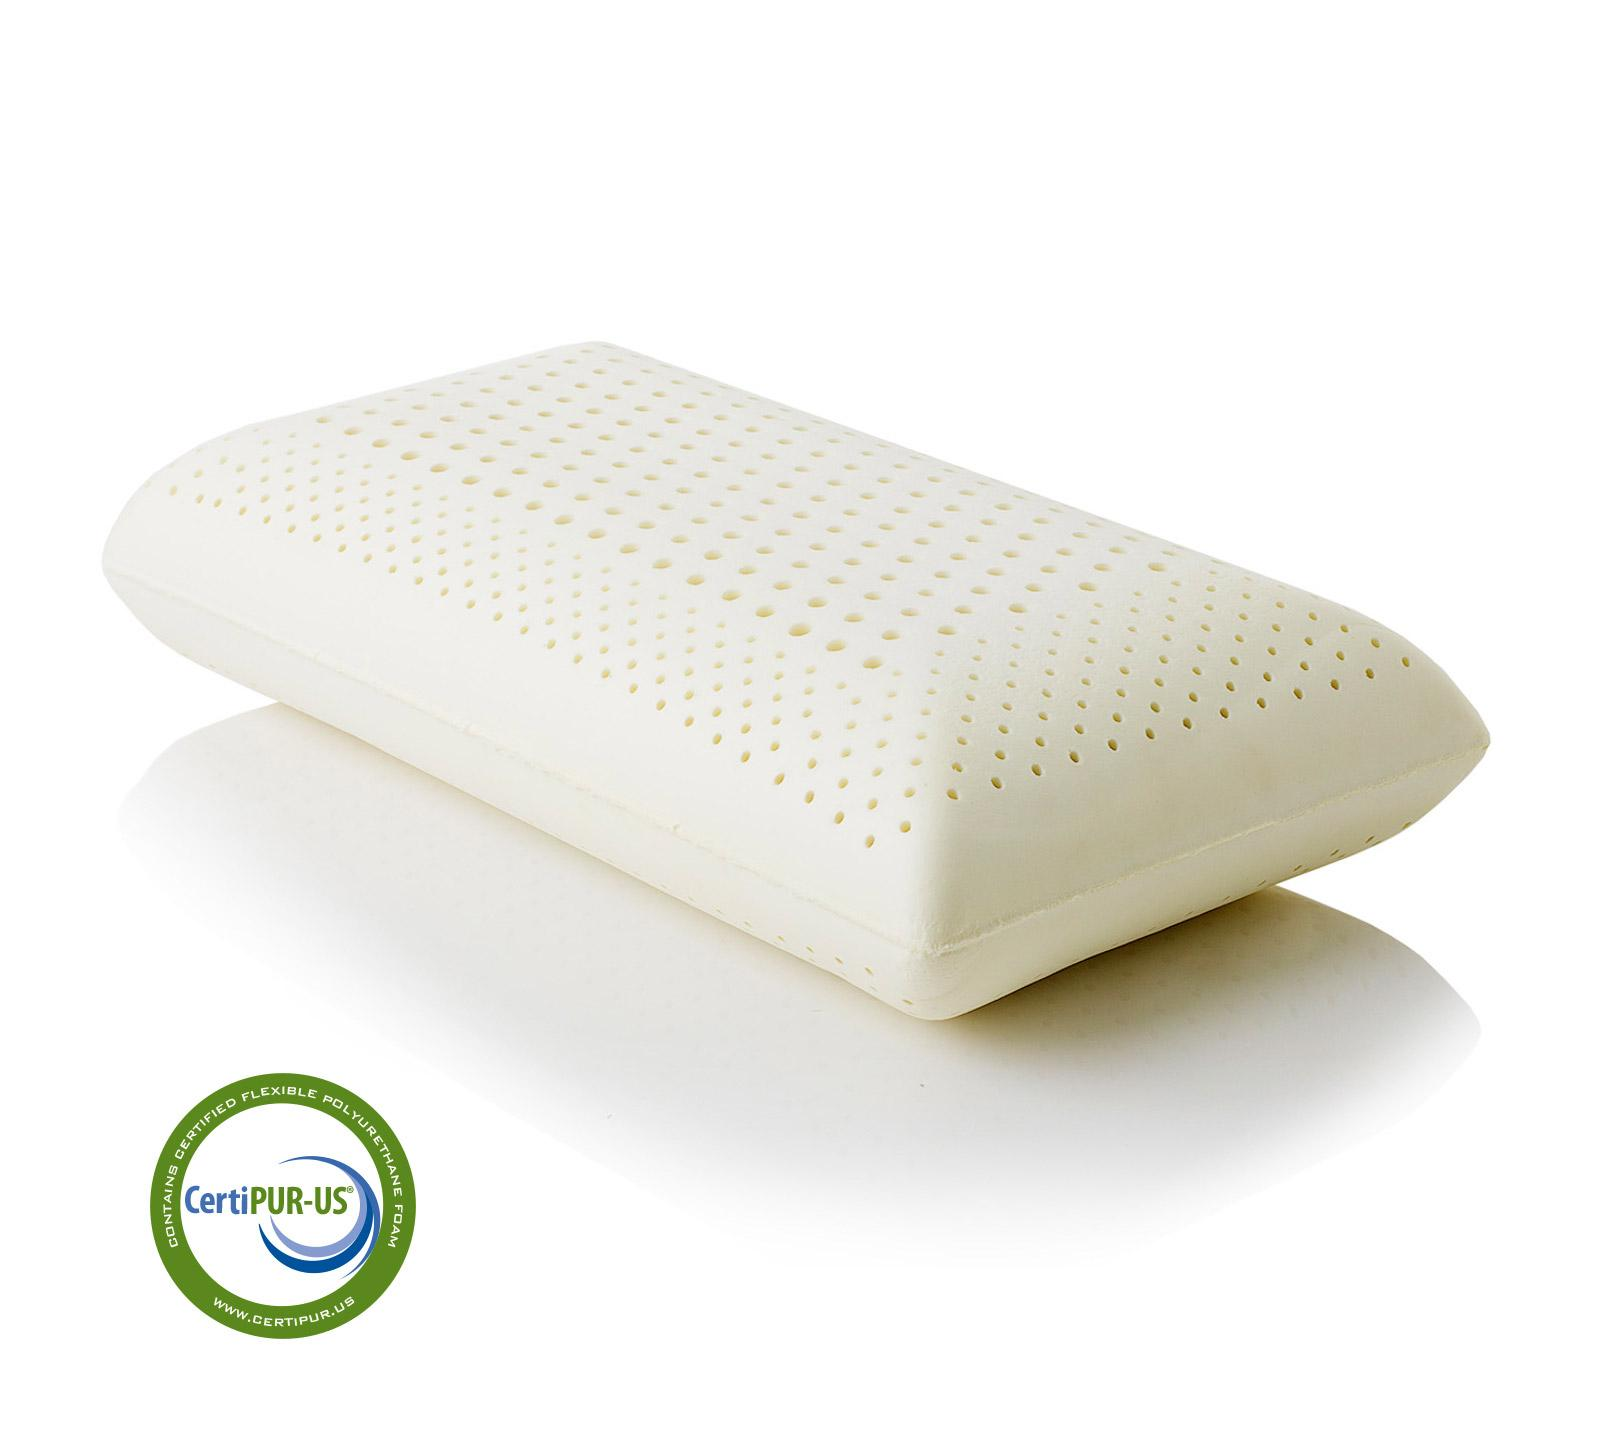 Firm Memory Foam Pillow Zoned Dough Memory Foam 6